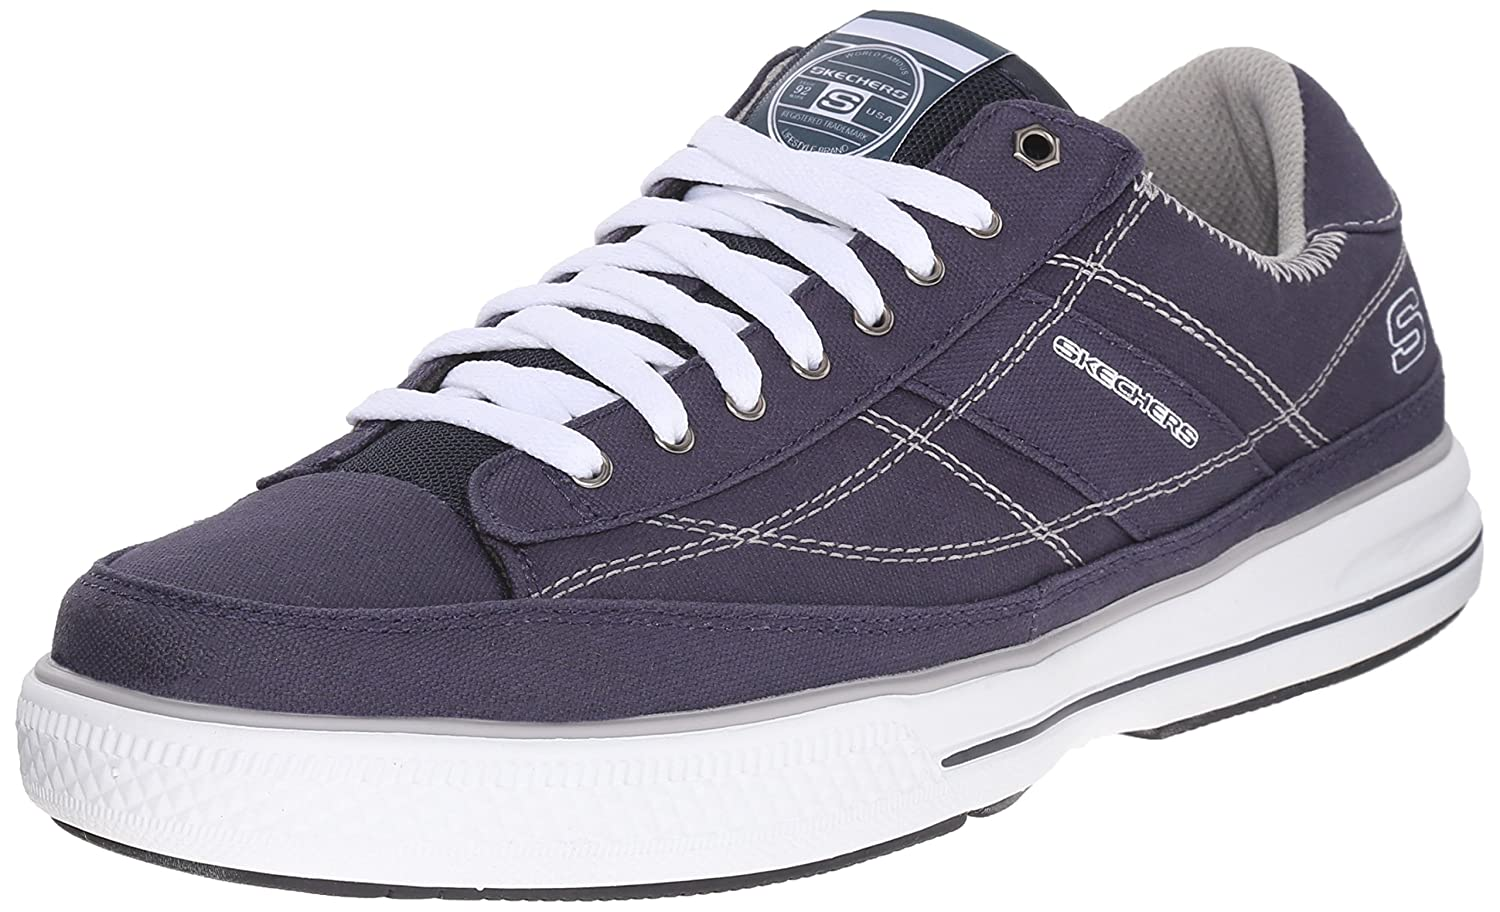 Skechers Arcade Chat Mf Herren Schnürhalbschuhe: Skechers: Amazon.de ...